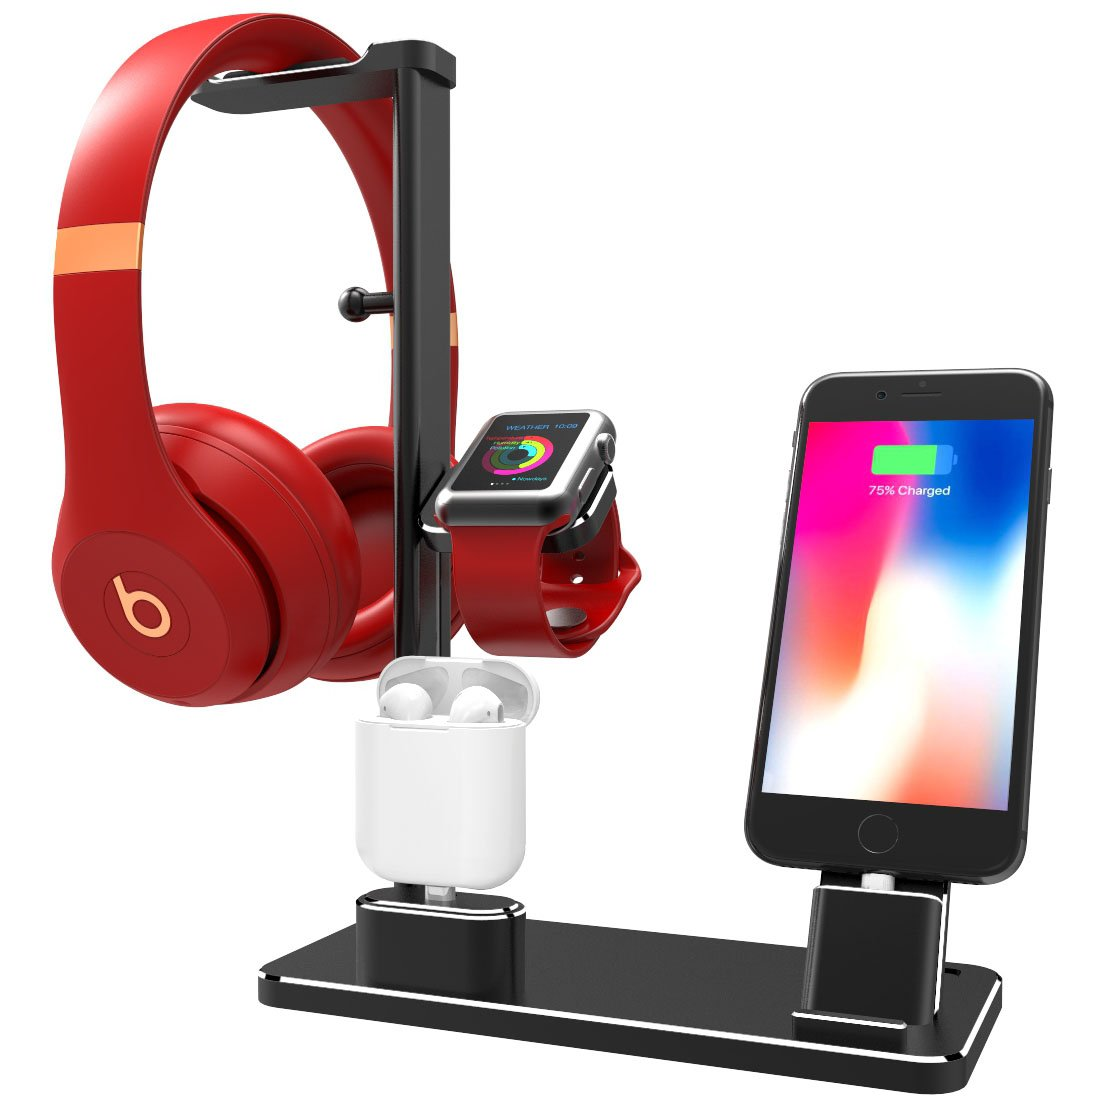 DHOUEA Compatible 6 in 1 Cell Phone Stand Replacement for Apple Watch Charging Dock Station Headphones Holder for Phone Xs Max XS XR X 7 7plus 6s 6plus iPad Apple Watch Series 4 3 2 1 AirPods (Black) by DHOUEA